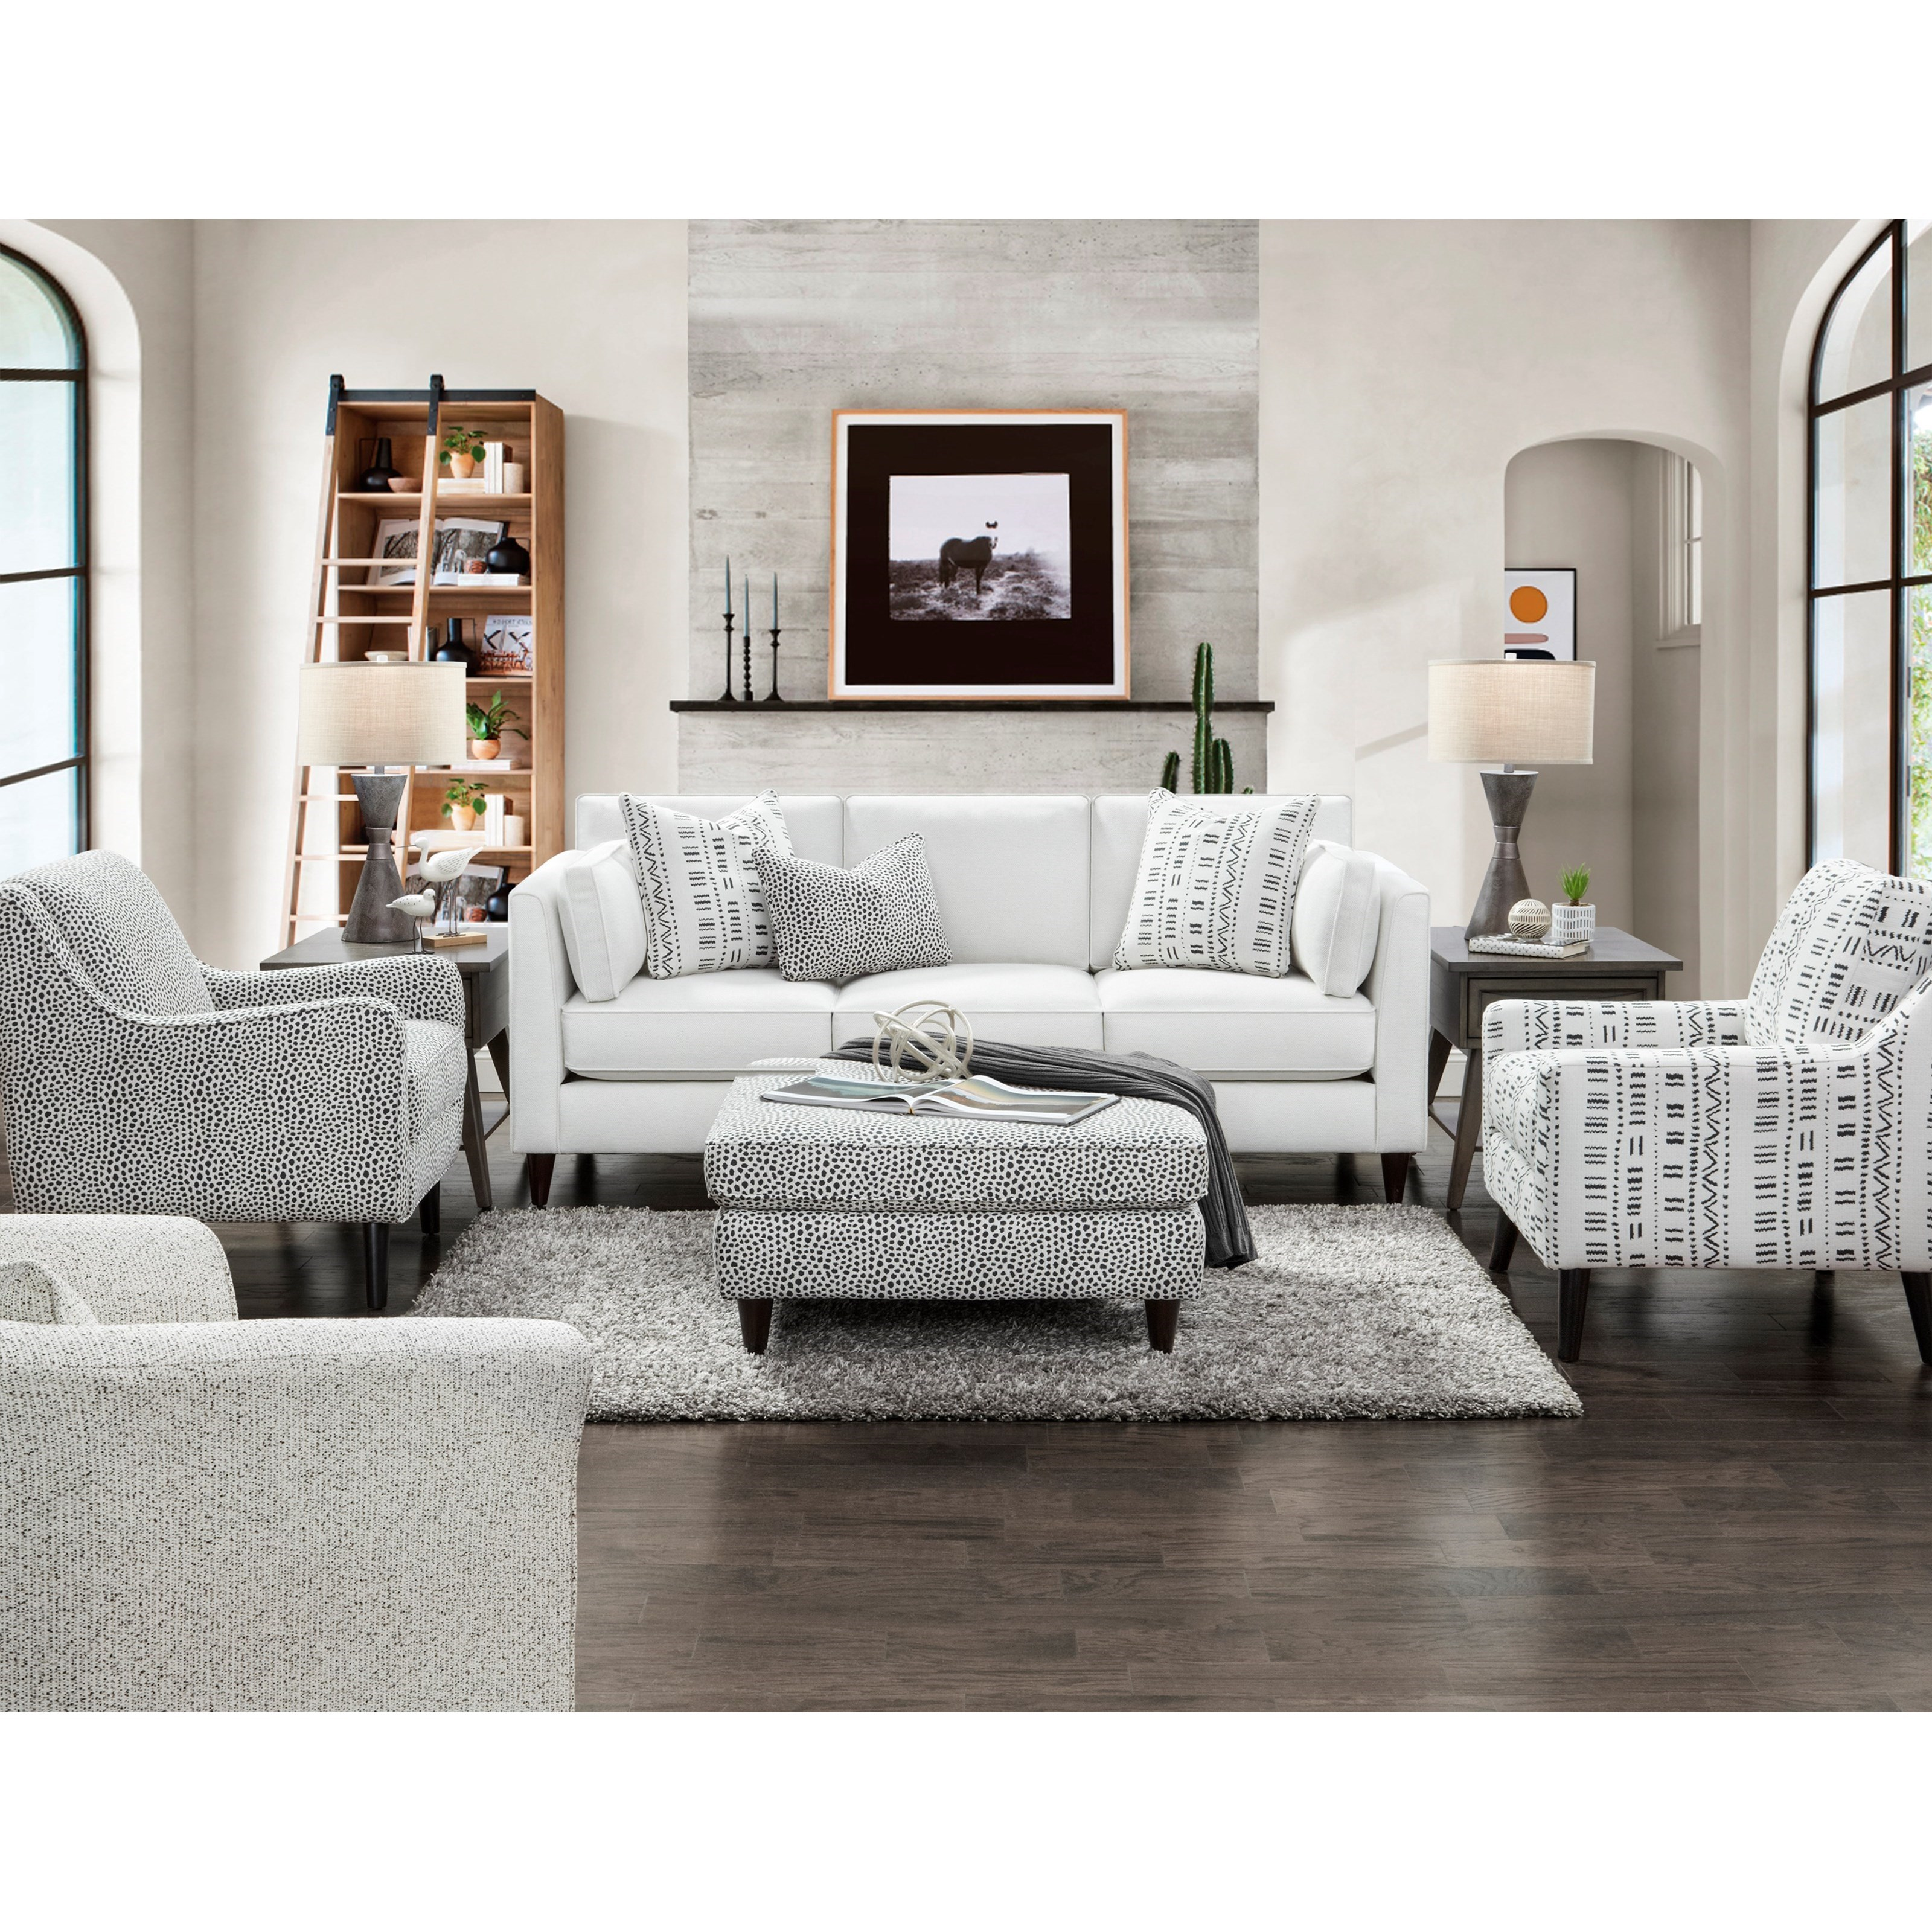 17-00 Living Room Group by Fusion Furniture at Furniture Superstore - Rochester, MN